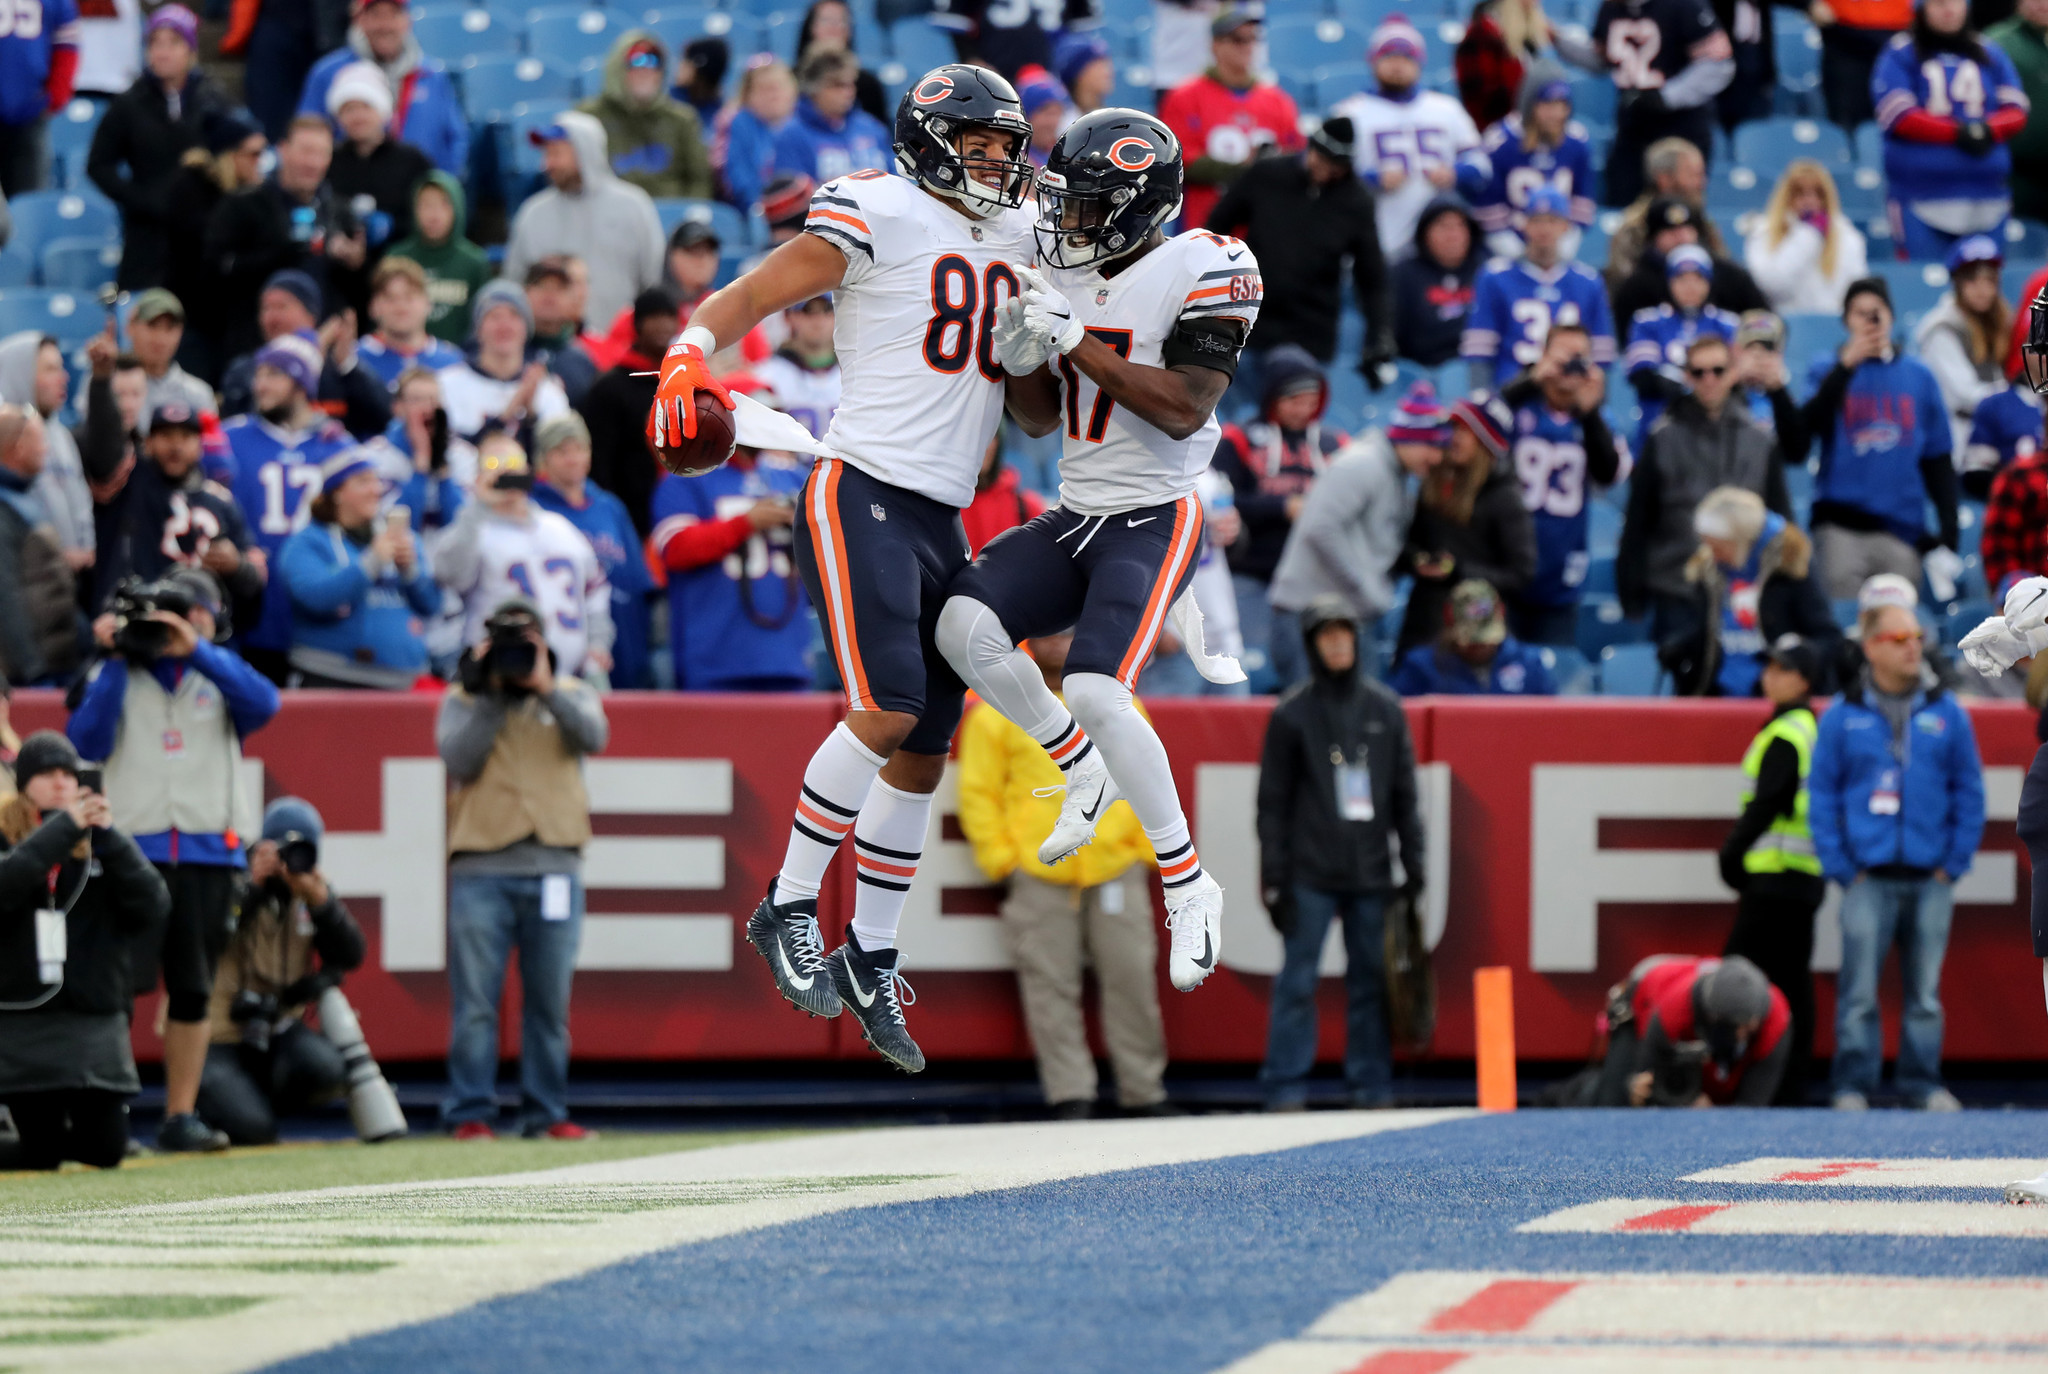 Week 9: Bears 41, Bills 9